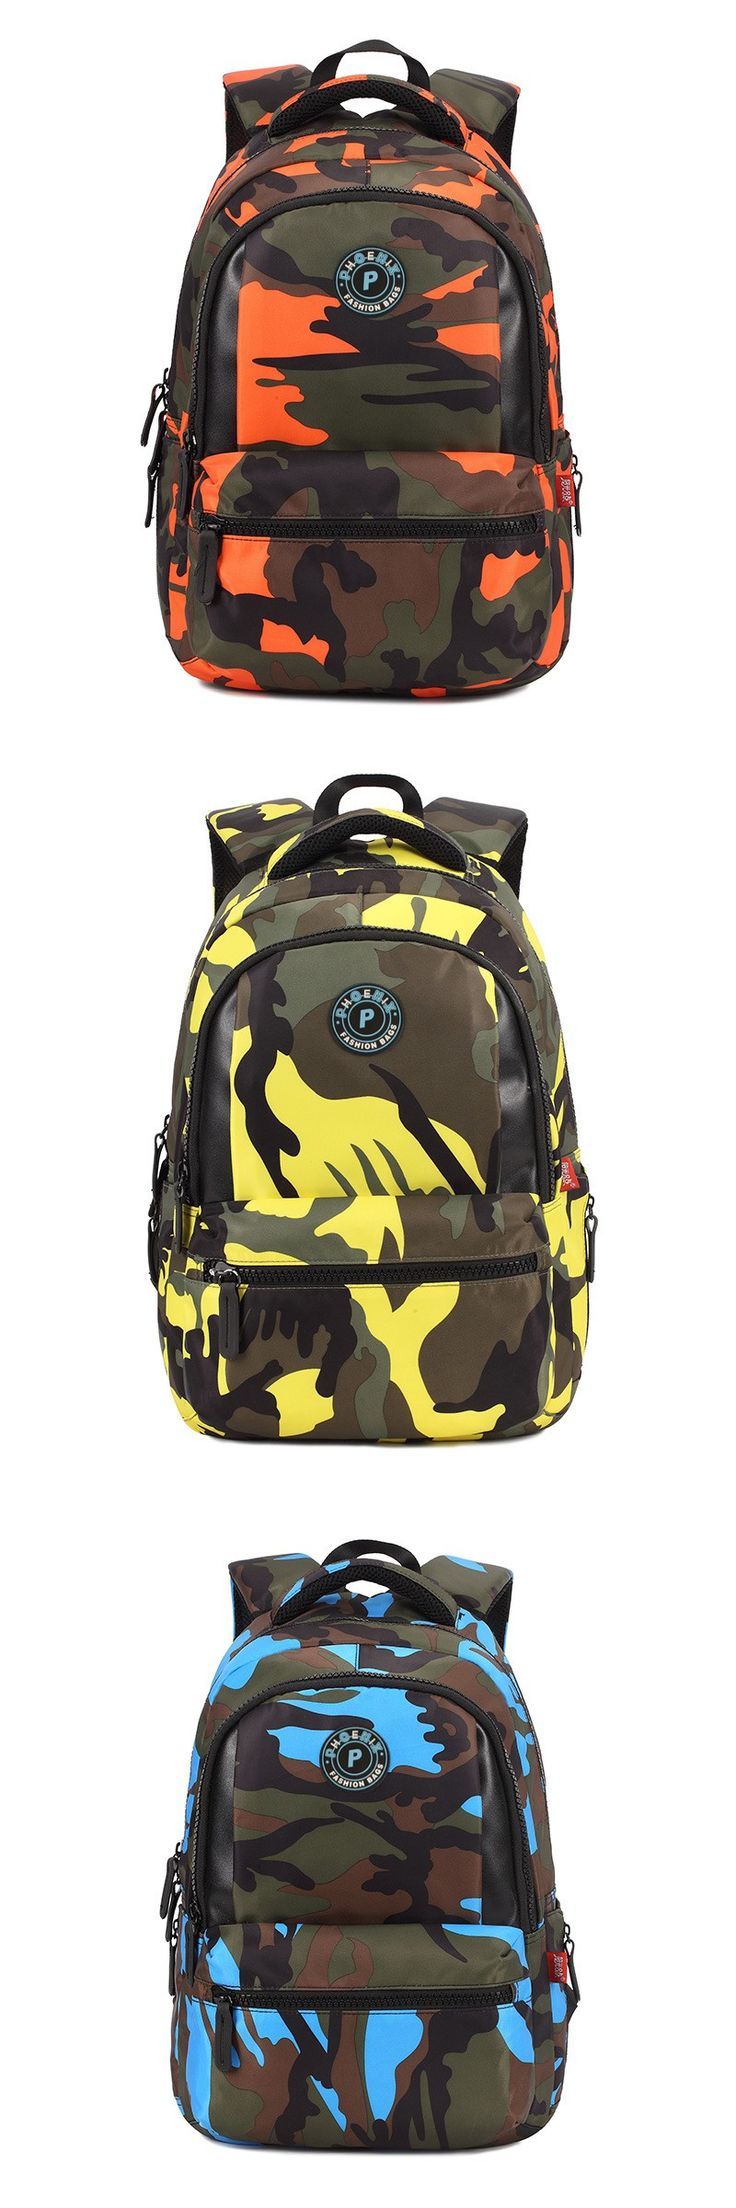 Primary students backpack, child school bags camo, kids school satchel, teen boys girls school backpack, book bag shoulder bag